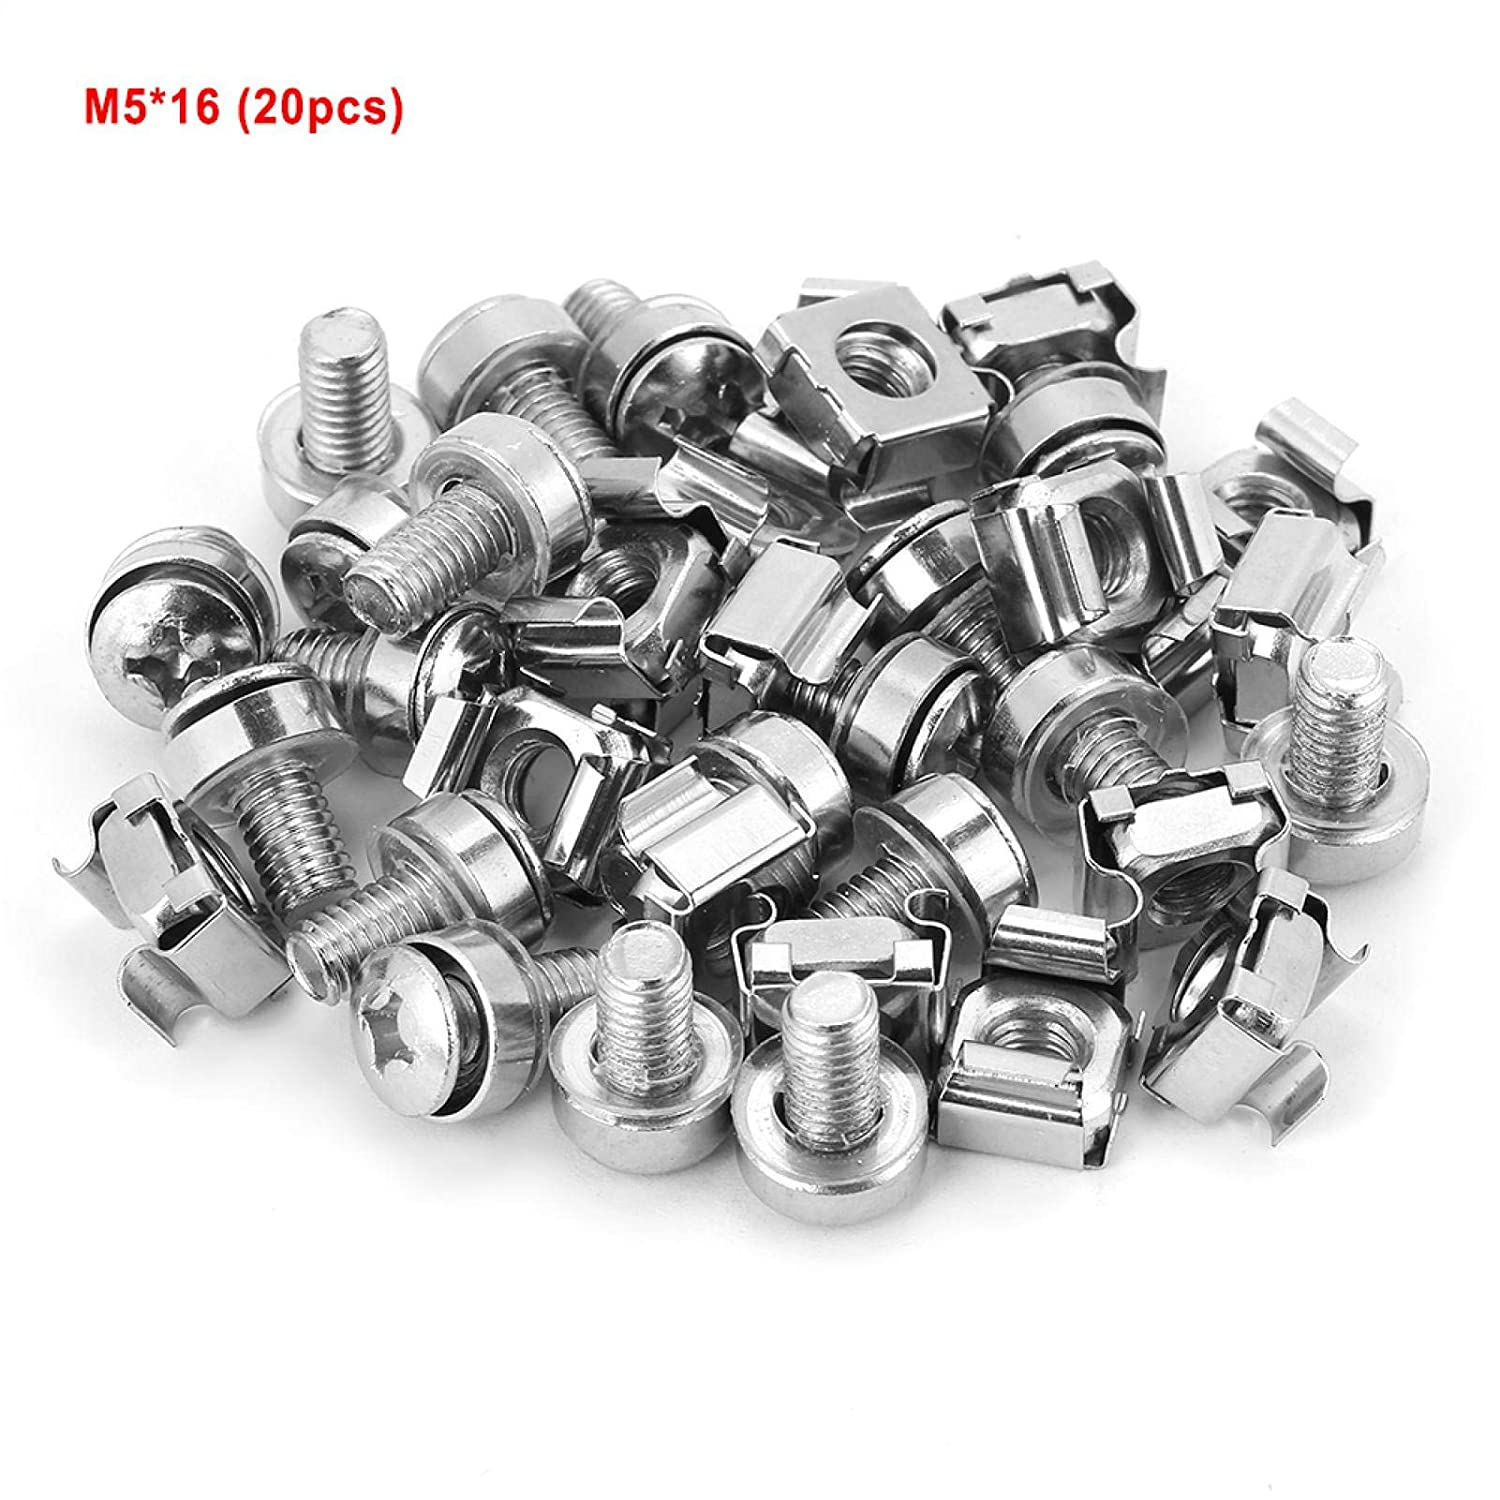 Network Cabinet Screw Nut, 20Pcs M516 M520 M616 M620 (Optional) Screws and Cage Nuts Assortment Kit, Cage Nut Fits for Network Cabinet Rack, Mechanical Mold(M516(20PCS))